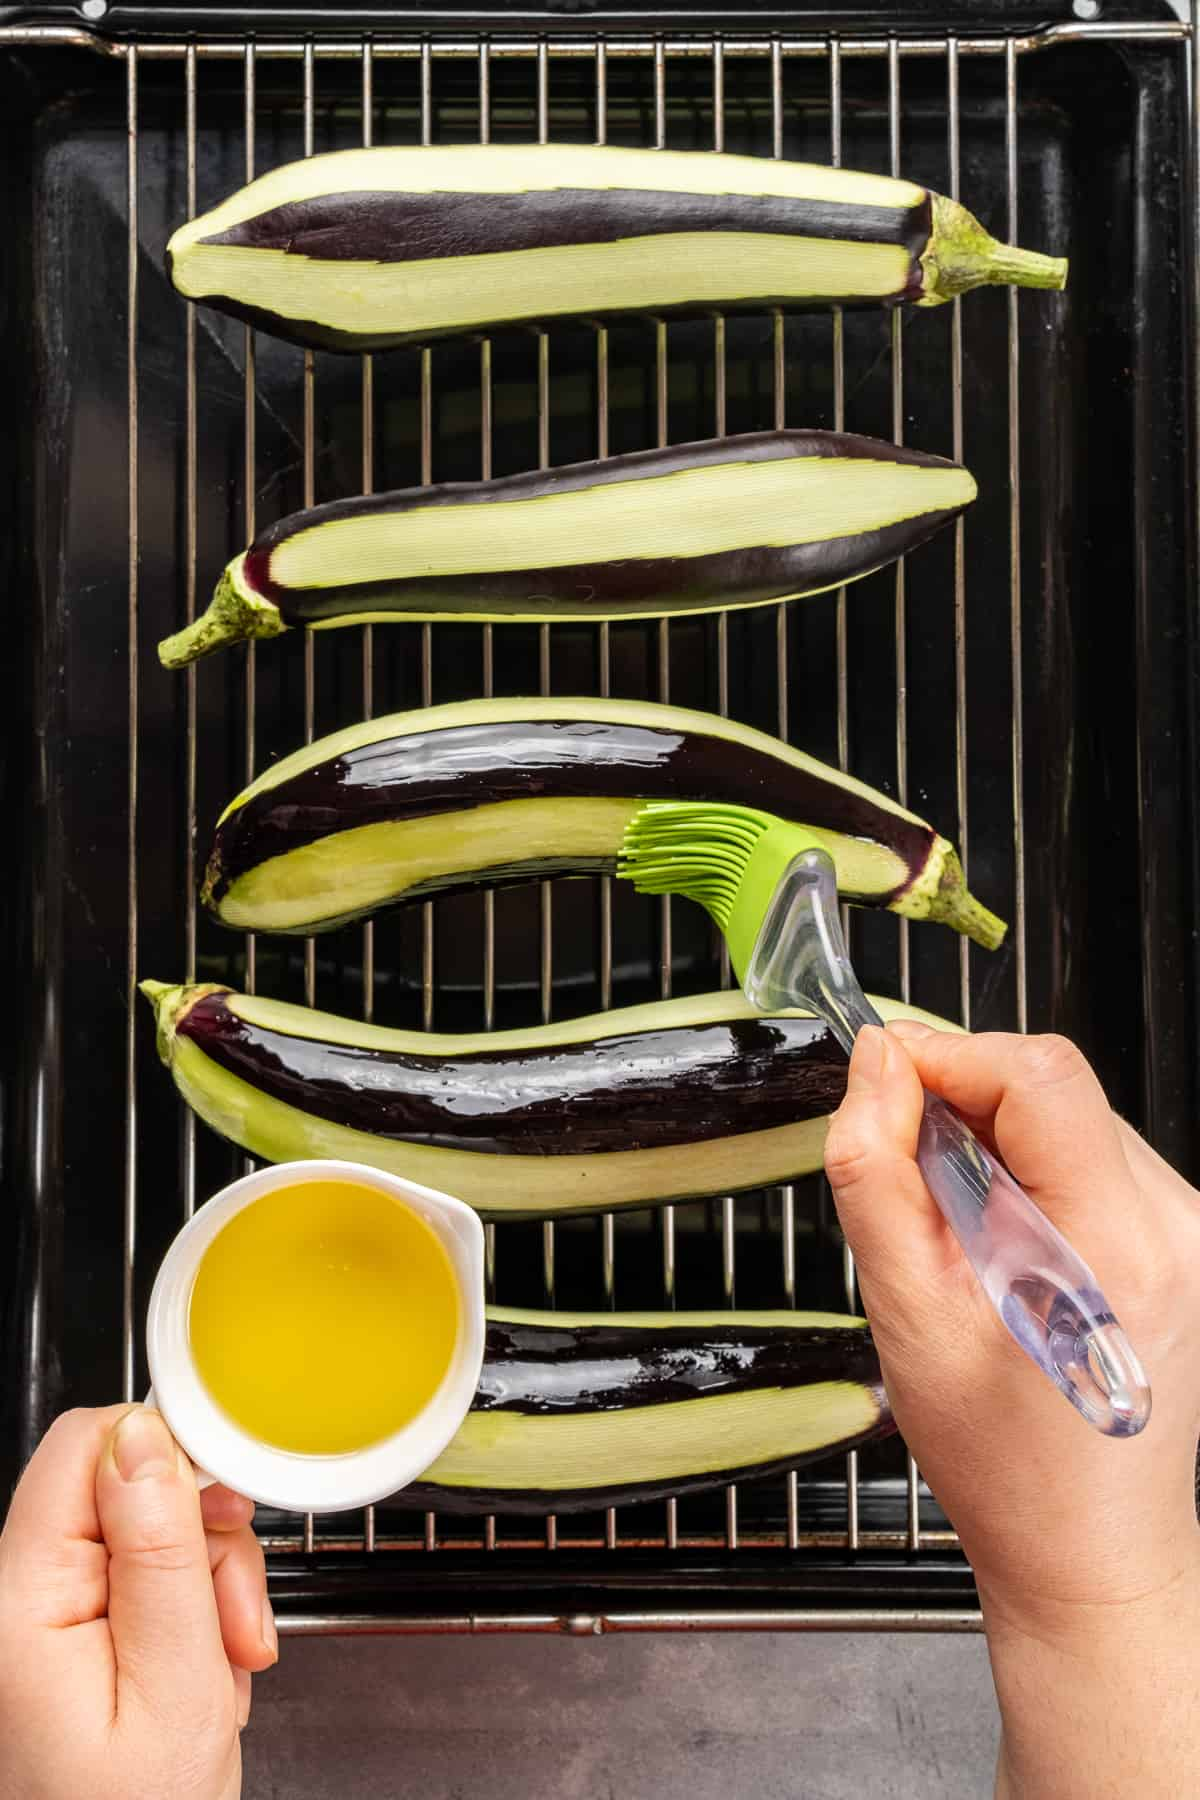 Hands brushing eggplants with olive oil.